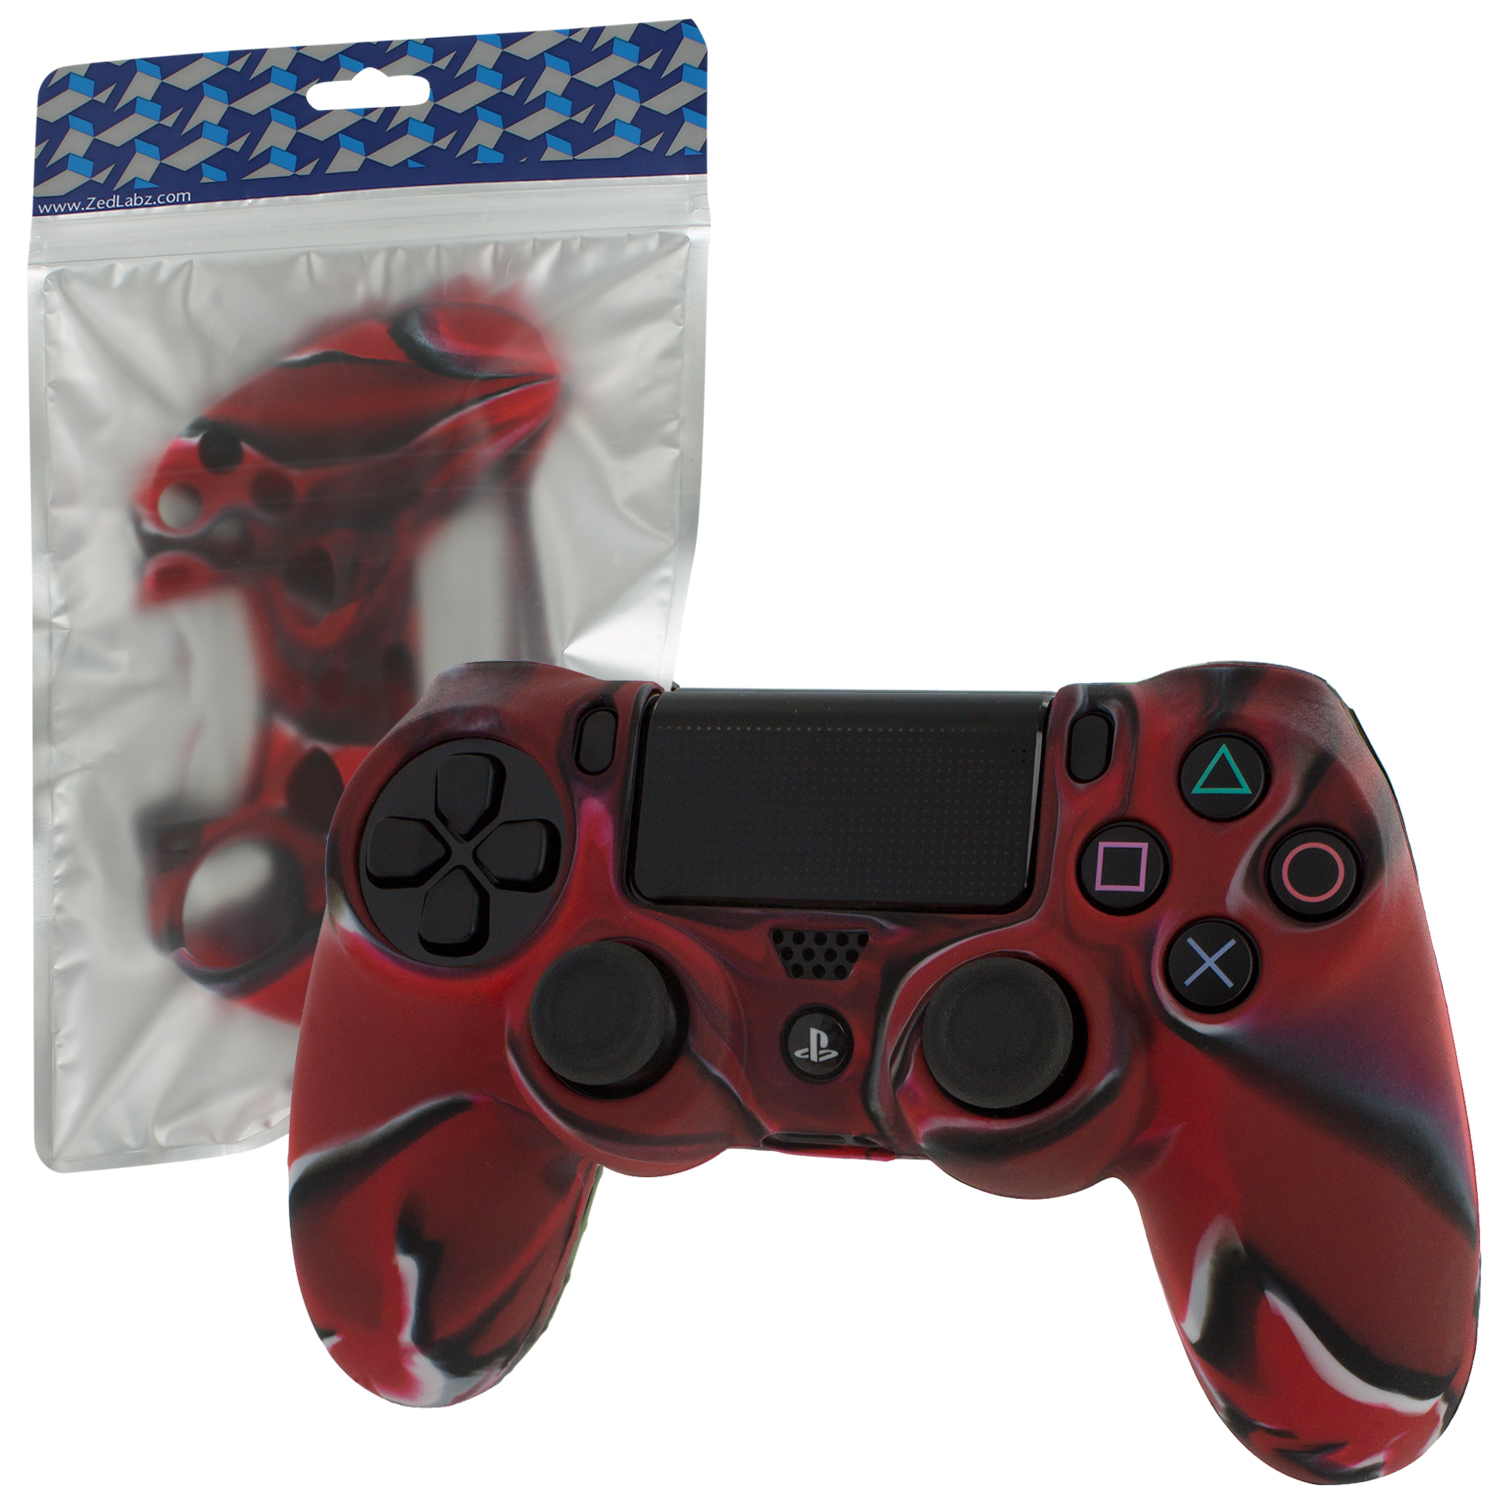 Zedlabz Soft Silicone Rubber Skin Grip Cover For Sony Ps4 Controller With Ribbed Handle - Camo Red